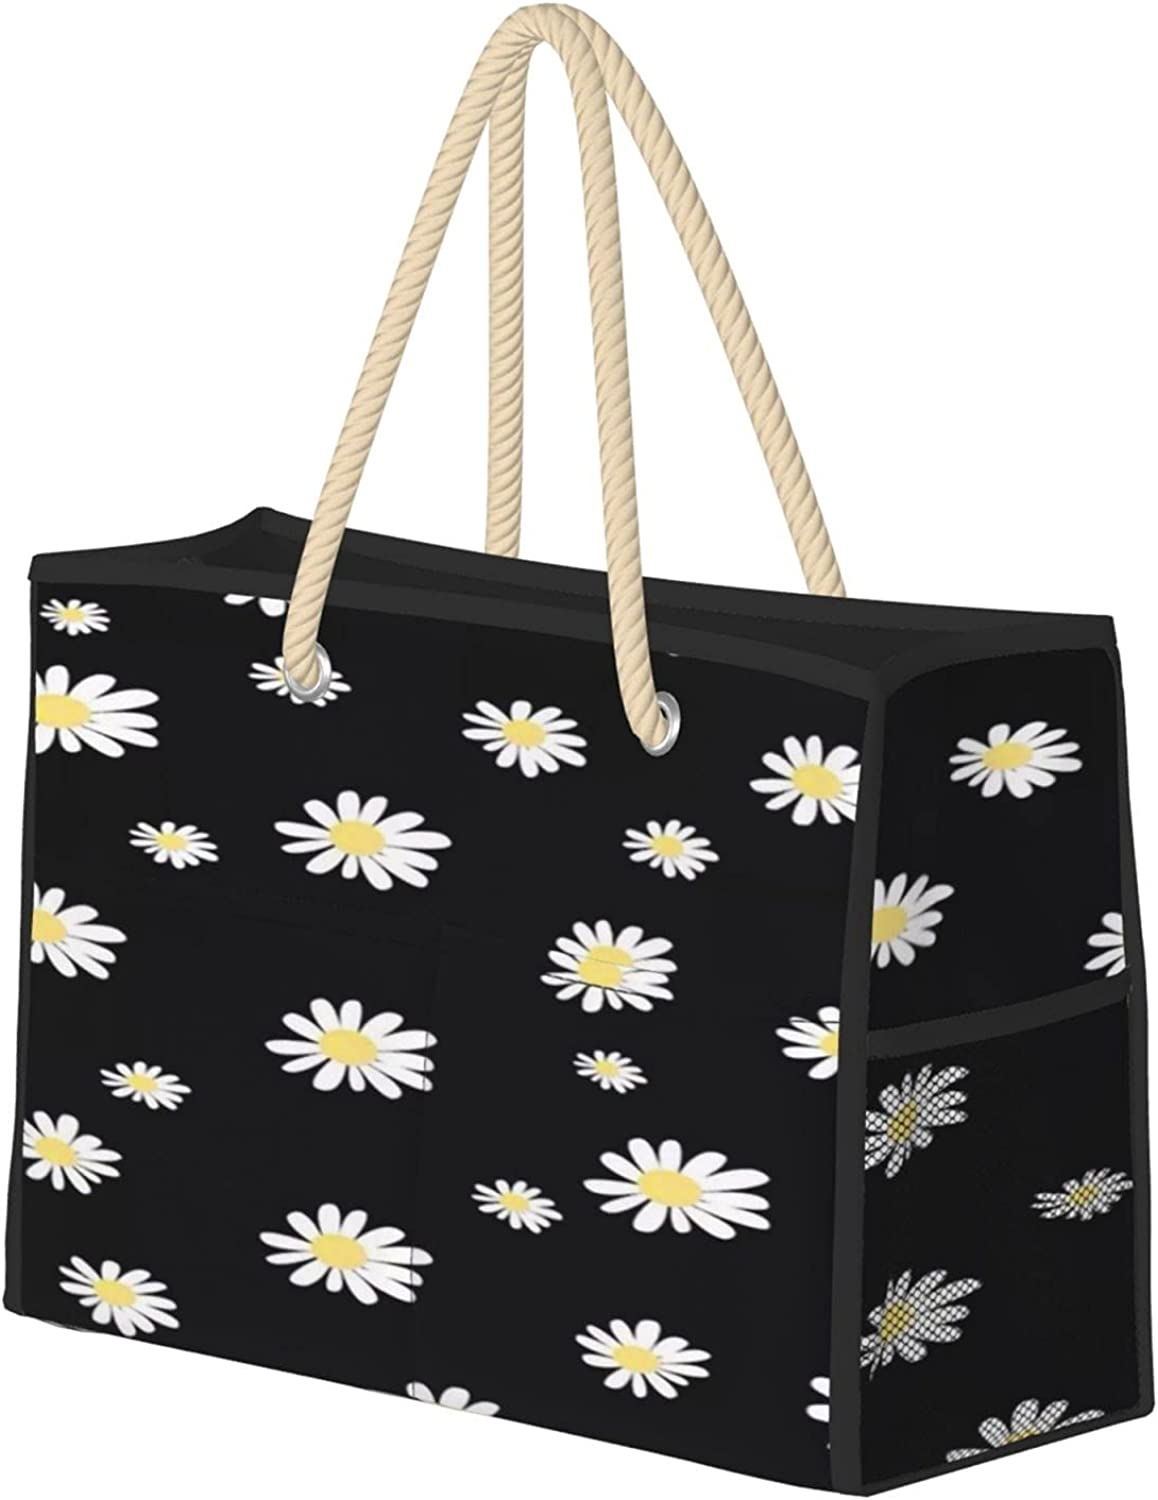 White Daisy Houston Mall Women Beach Tote Bag With Large Zipper Save money Handle Travel